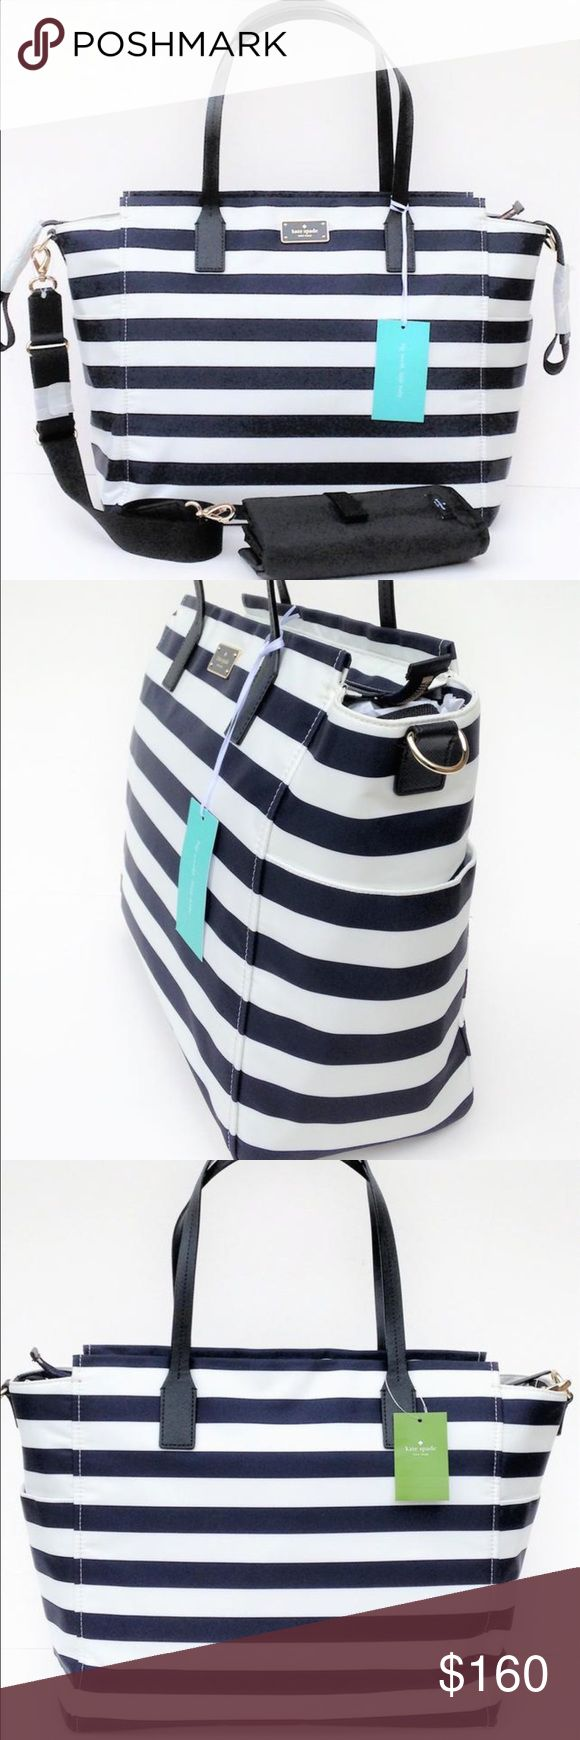 Kate Spade Diaper Bag This listing is for a beautiful brand new Kate Spade Taden diaper bag.easy to wash nylon material. The stripes are a cream and very dark navy blue color. At first glance it could pass as black. Hardware is a classy silver finish. Two exterior bottle pockets make things easy for a mom on the go! Beautiful leather shoulder straps and removable cross body strap allow this bag to be carried two ways. Zipper closure and multiple interior storage pockets. Diaper changing pad…